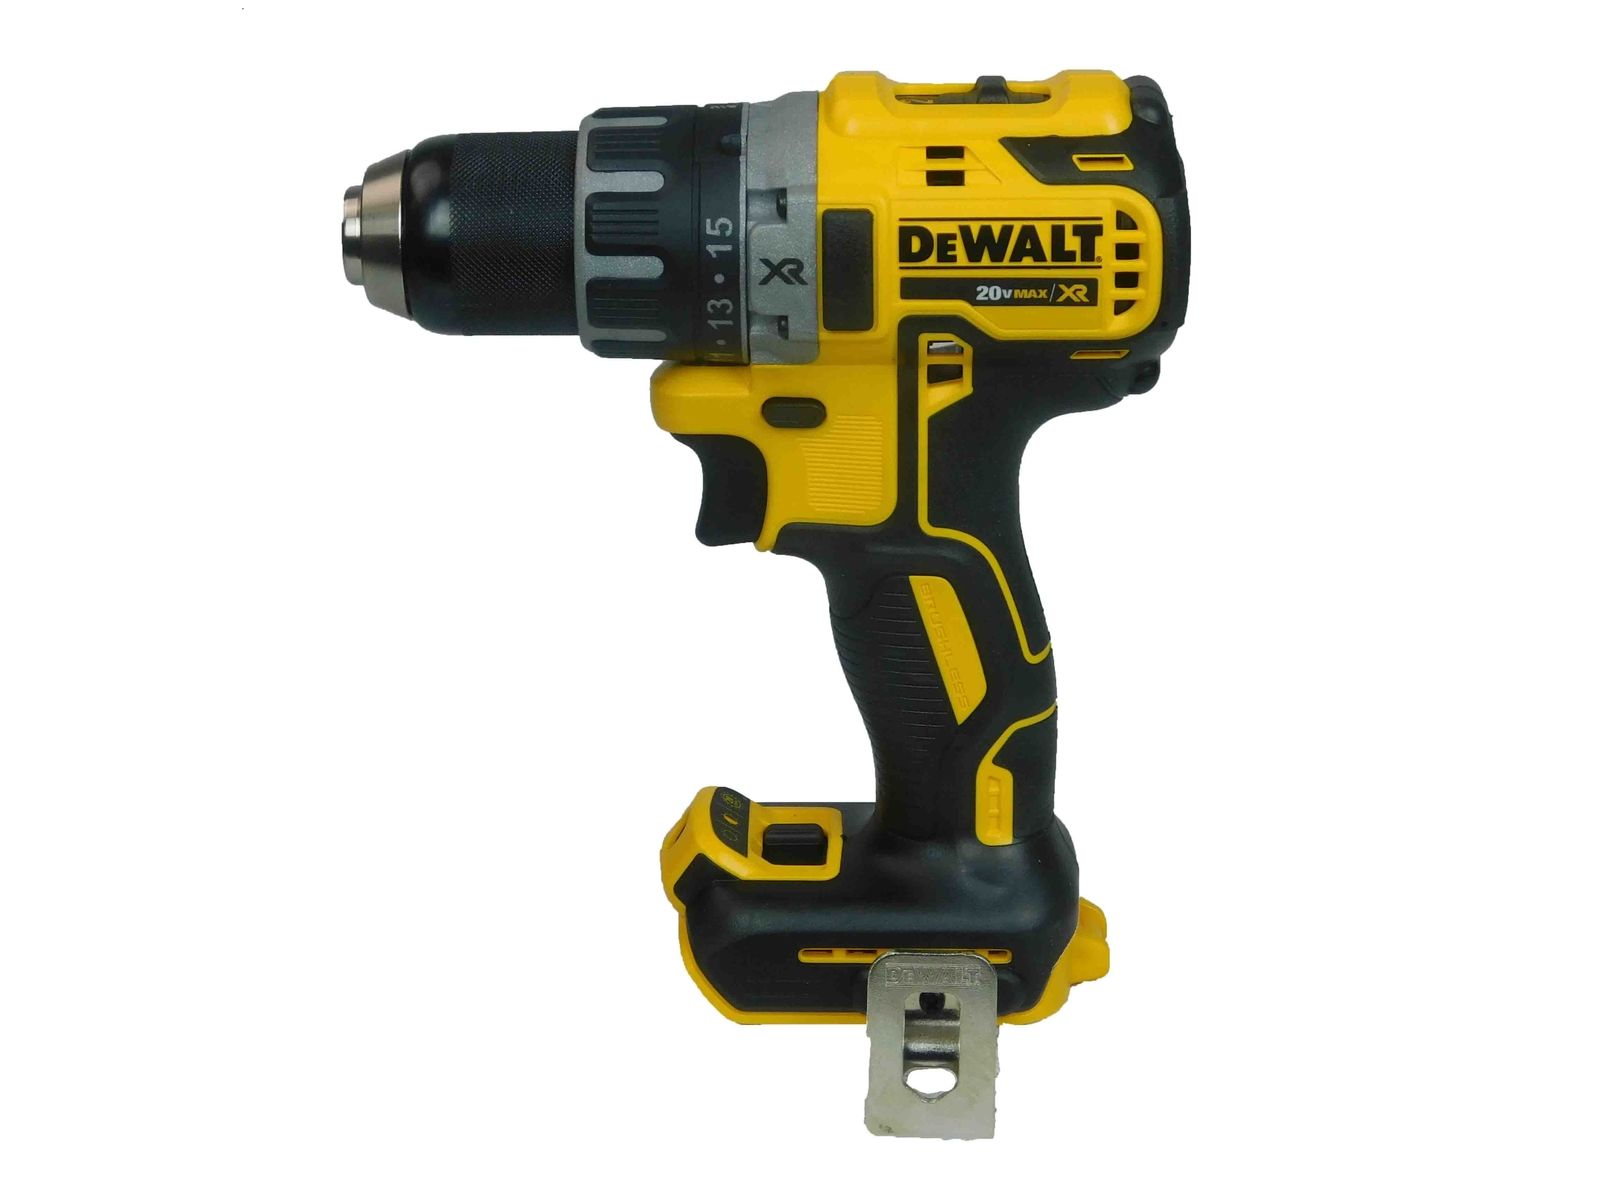 Dewalt-DCD791B-20V-1-2-Brushless-Drill-4Ah-DCB204-Lithium-Ion-Battery-image-2